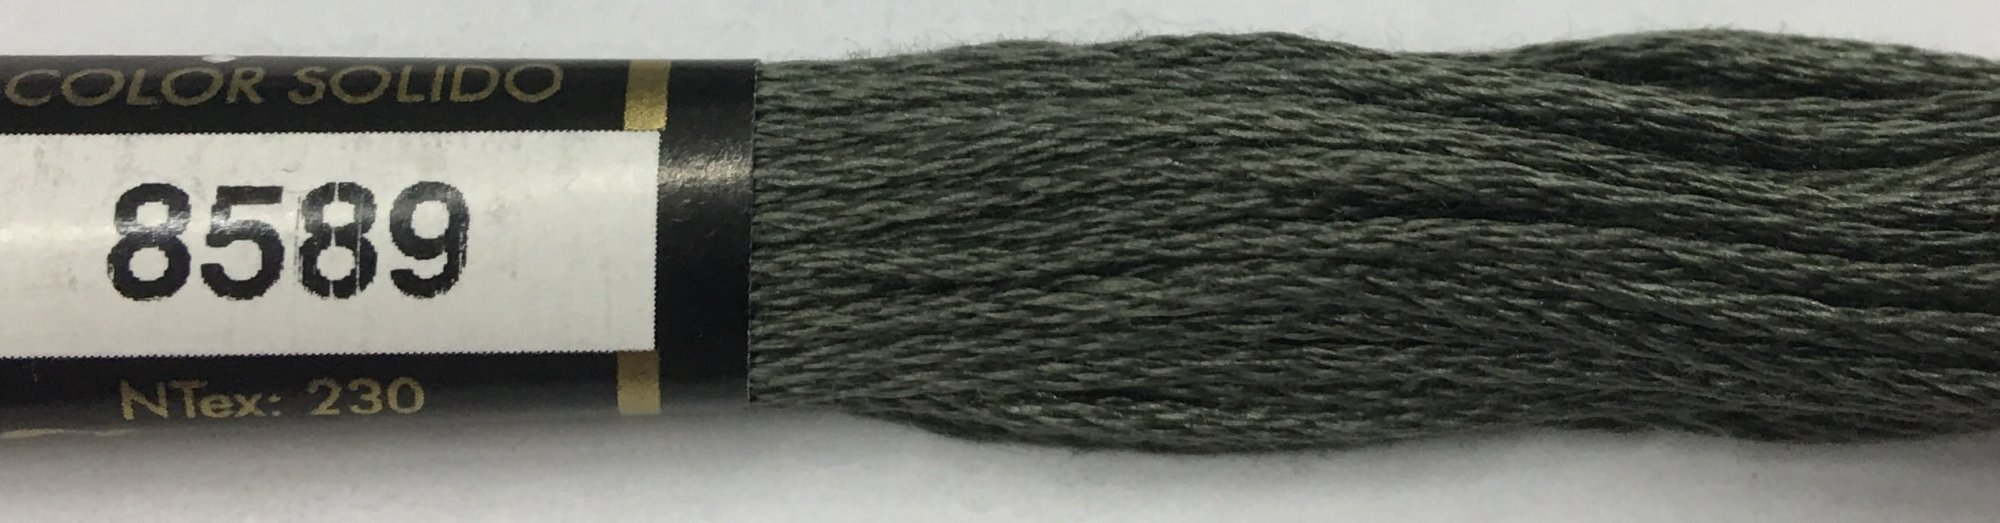 F8589 Presencia 100% Mercerized Finca Cotton 6 ply Embroidery Floss 8 meter skein